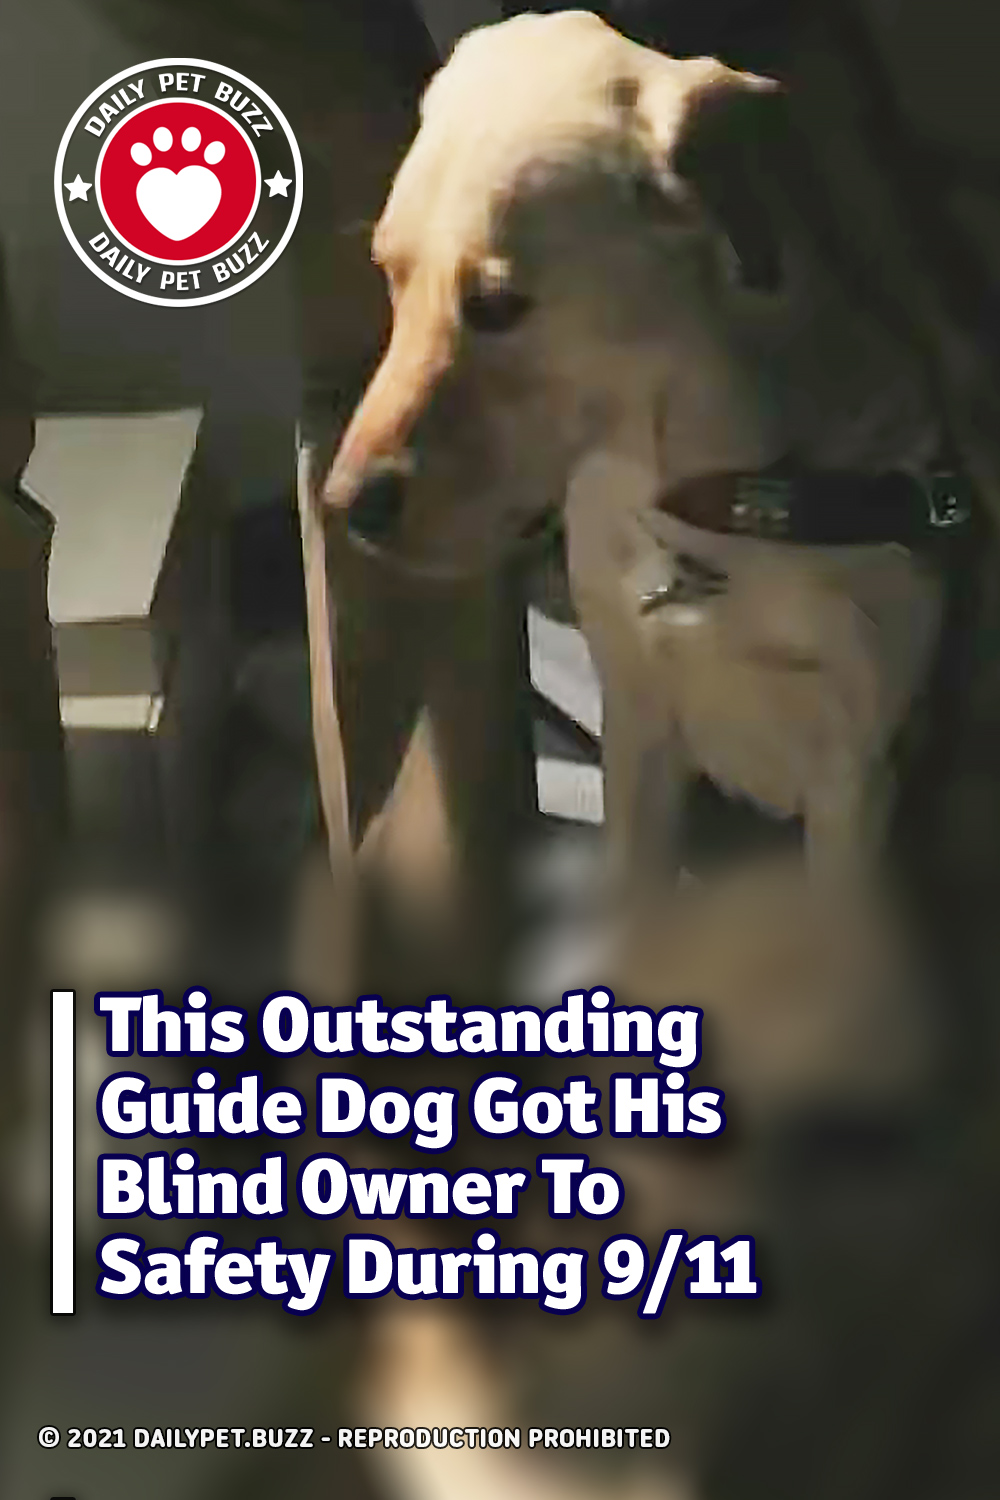 This Outstanding Guide Dog Got His Blind Owner To Safety During 9/11